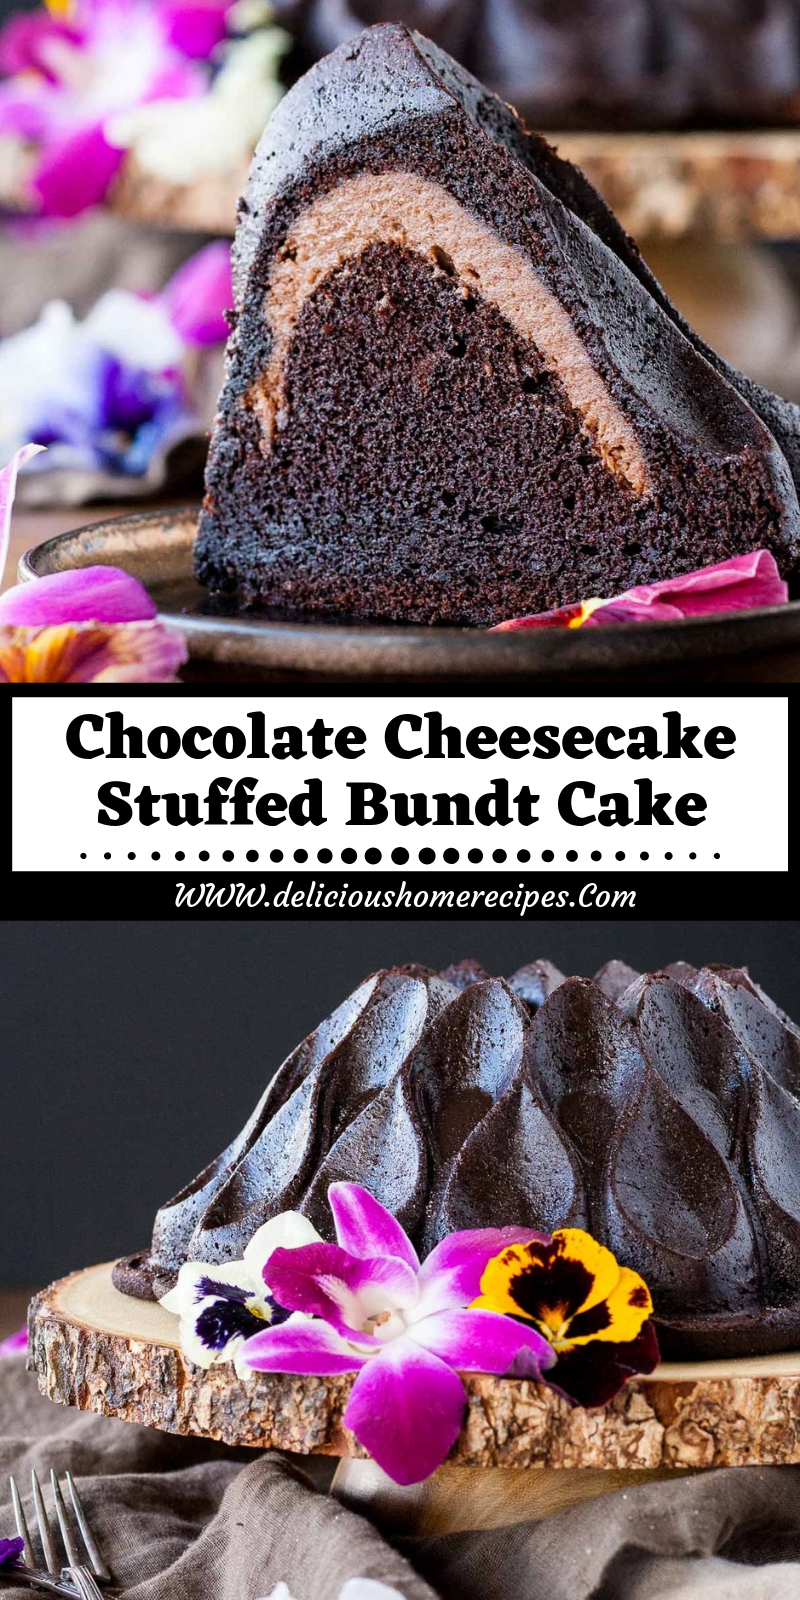 Chocolate Cheesecake Stuffed Bundt Cake